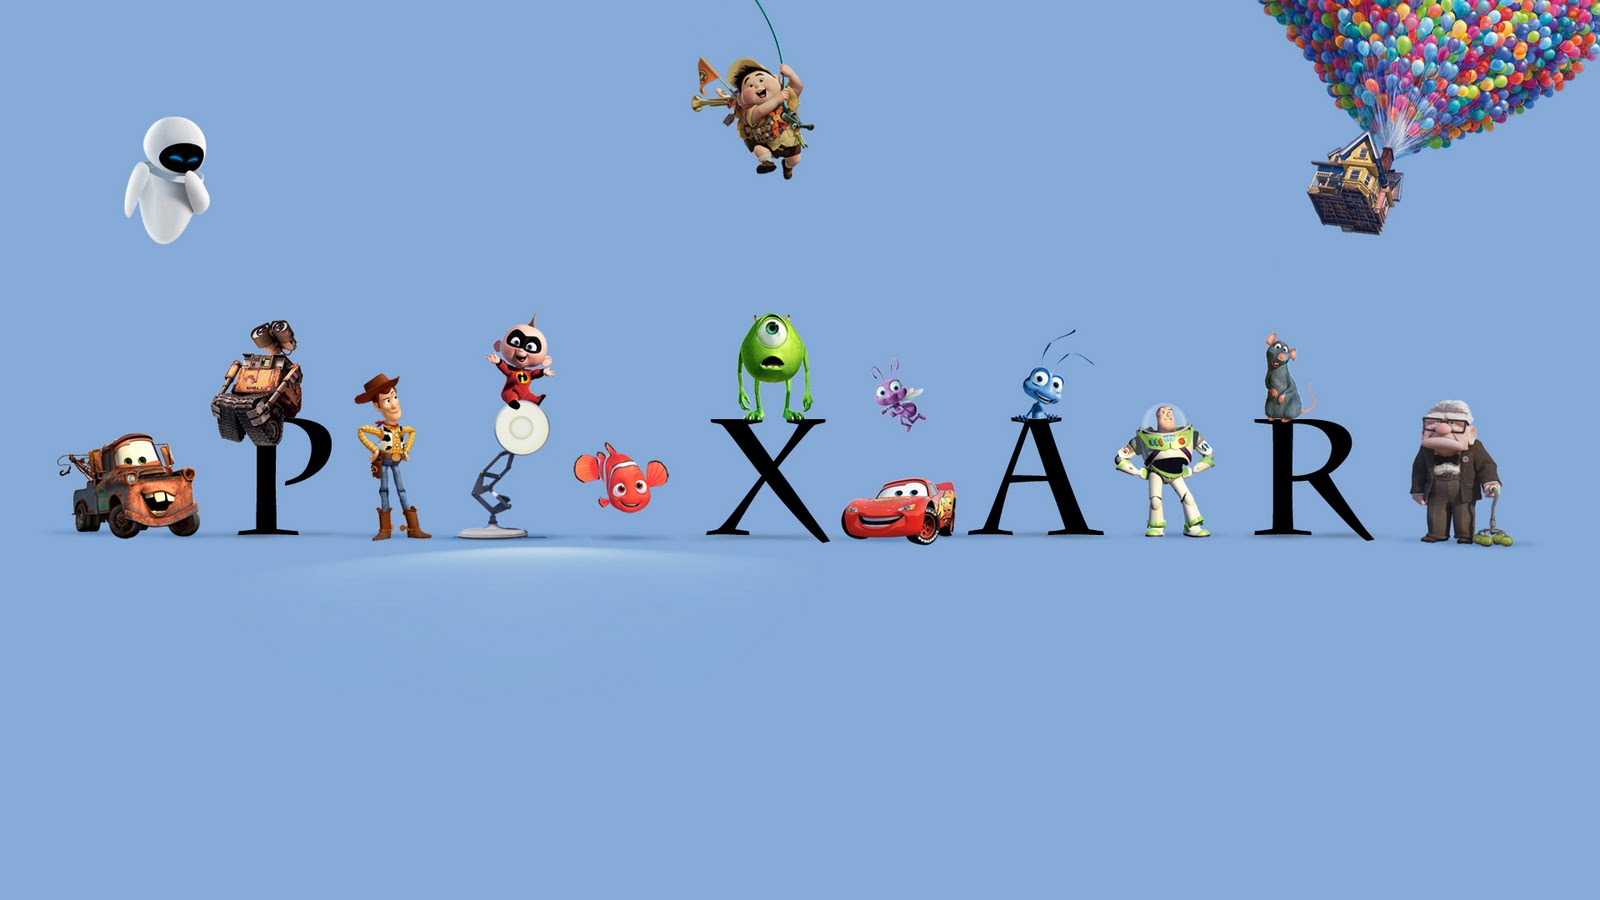 Pixar Animation Studios Logo and characters